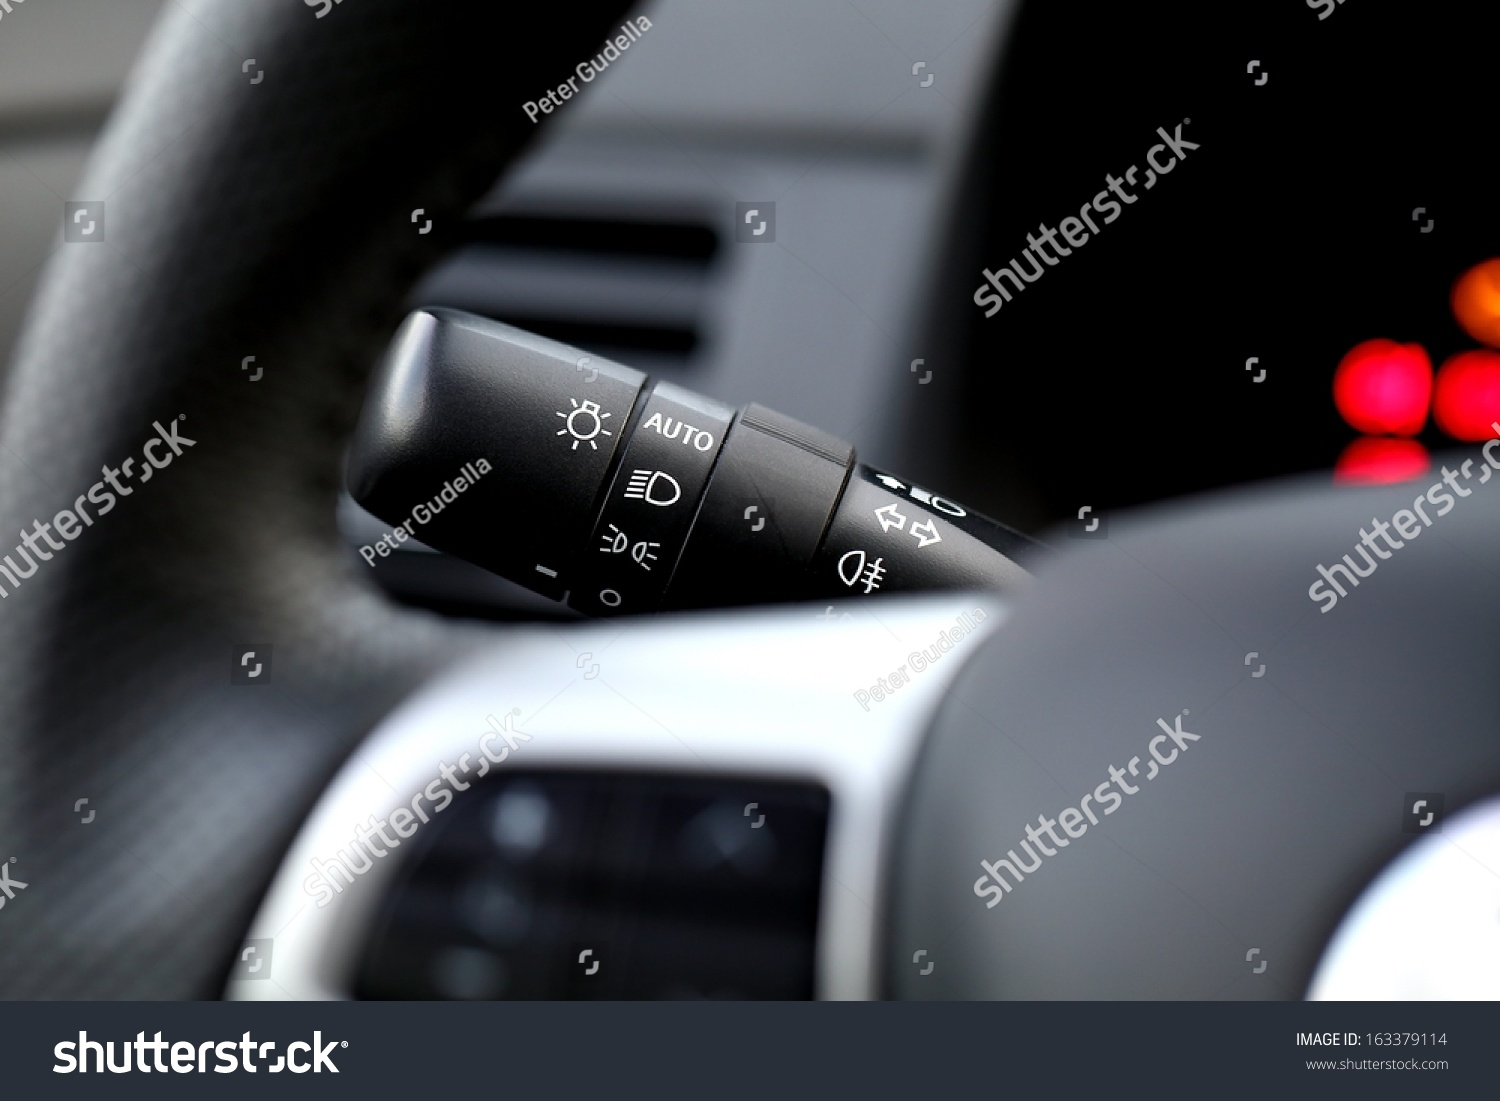 car interior light switch stock photo 163379114 shutterstock. Black Bedroom Furniture Sets. Home Design Ideas